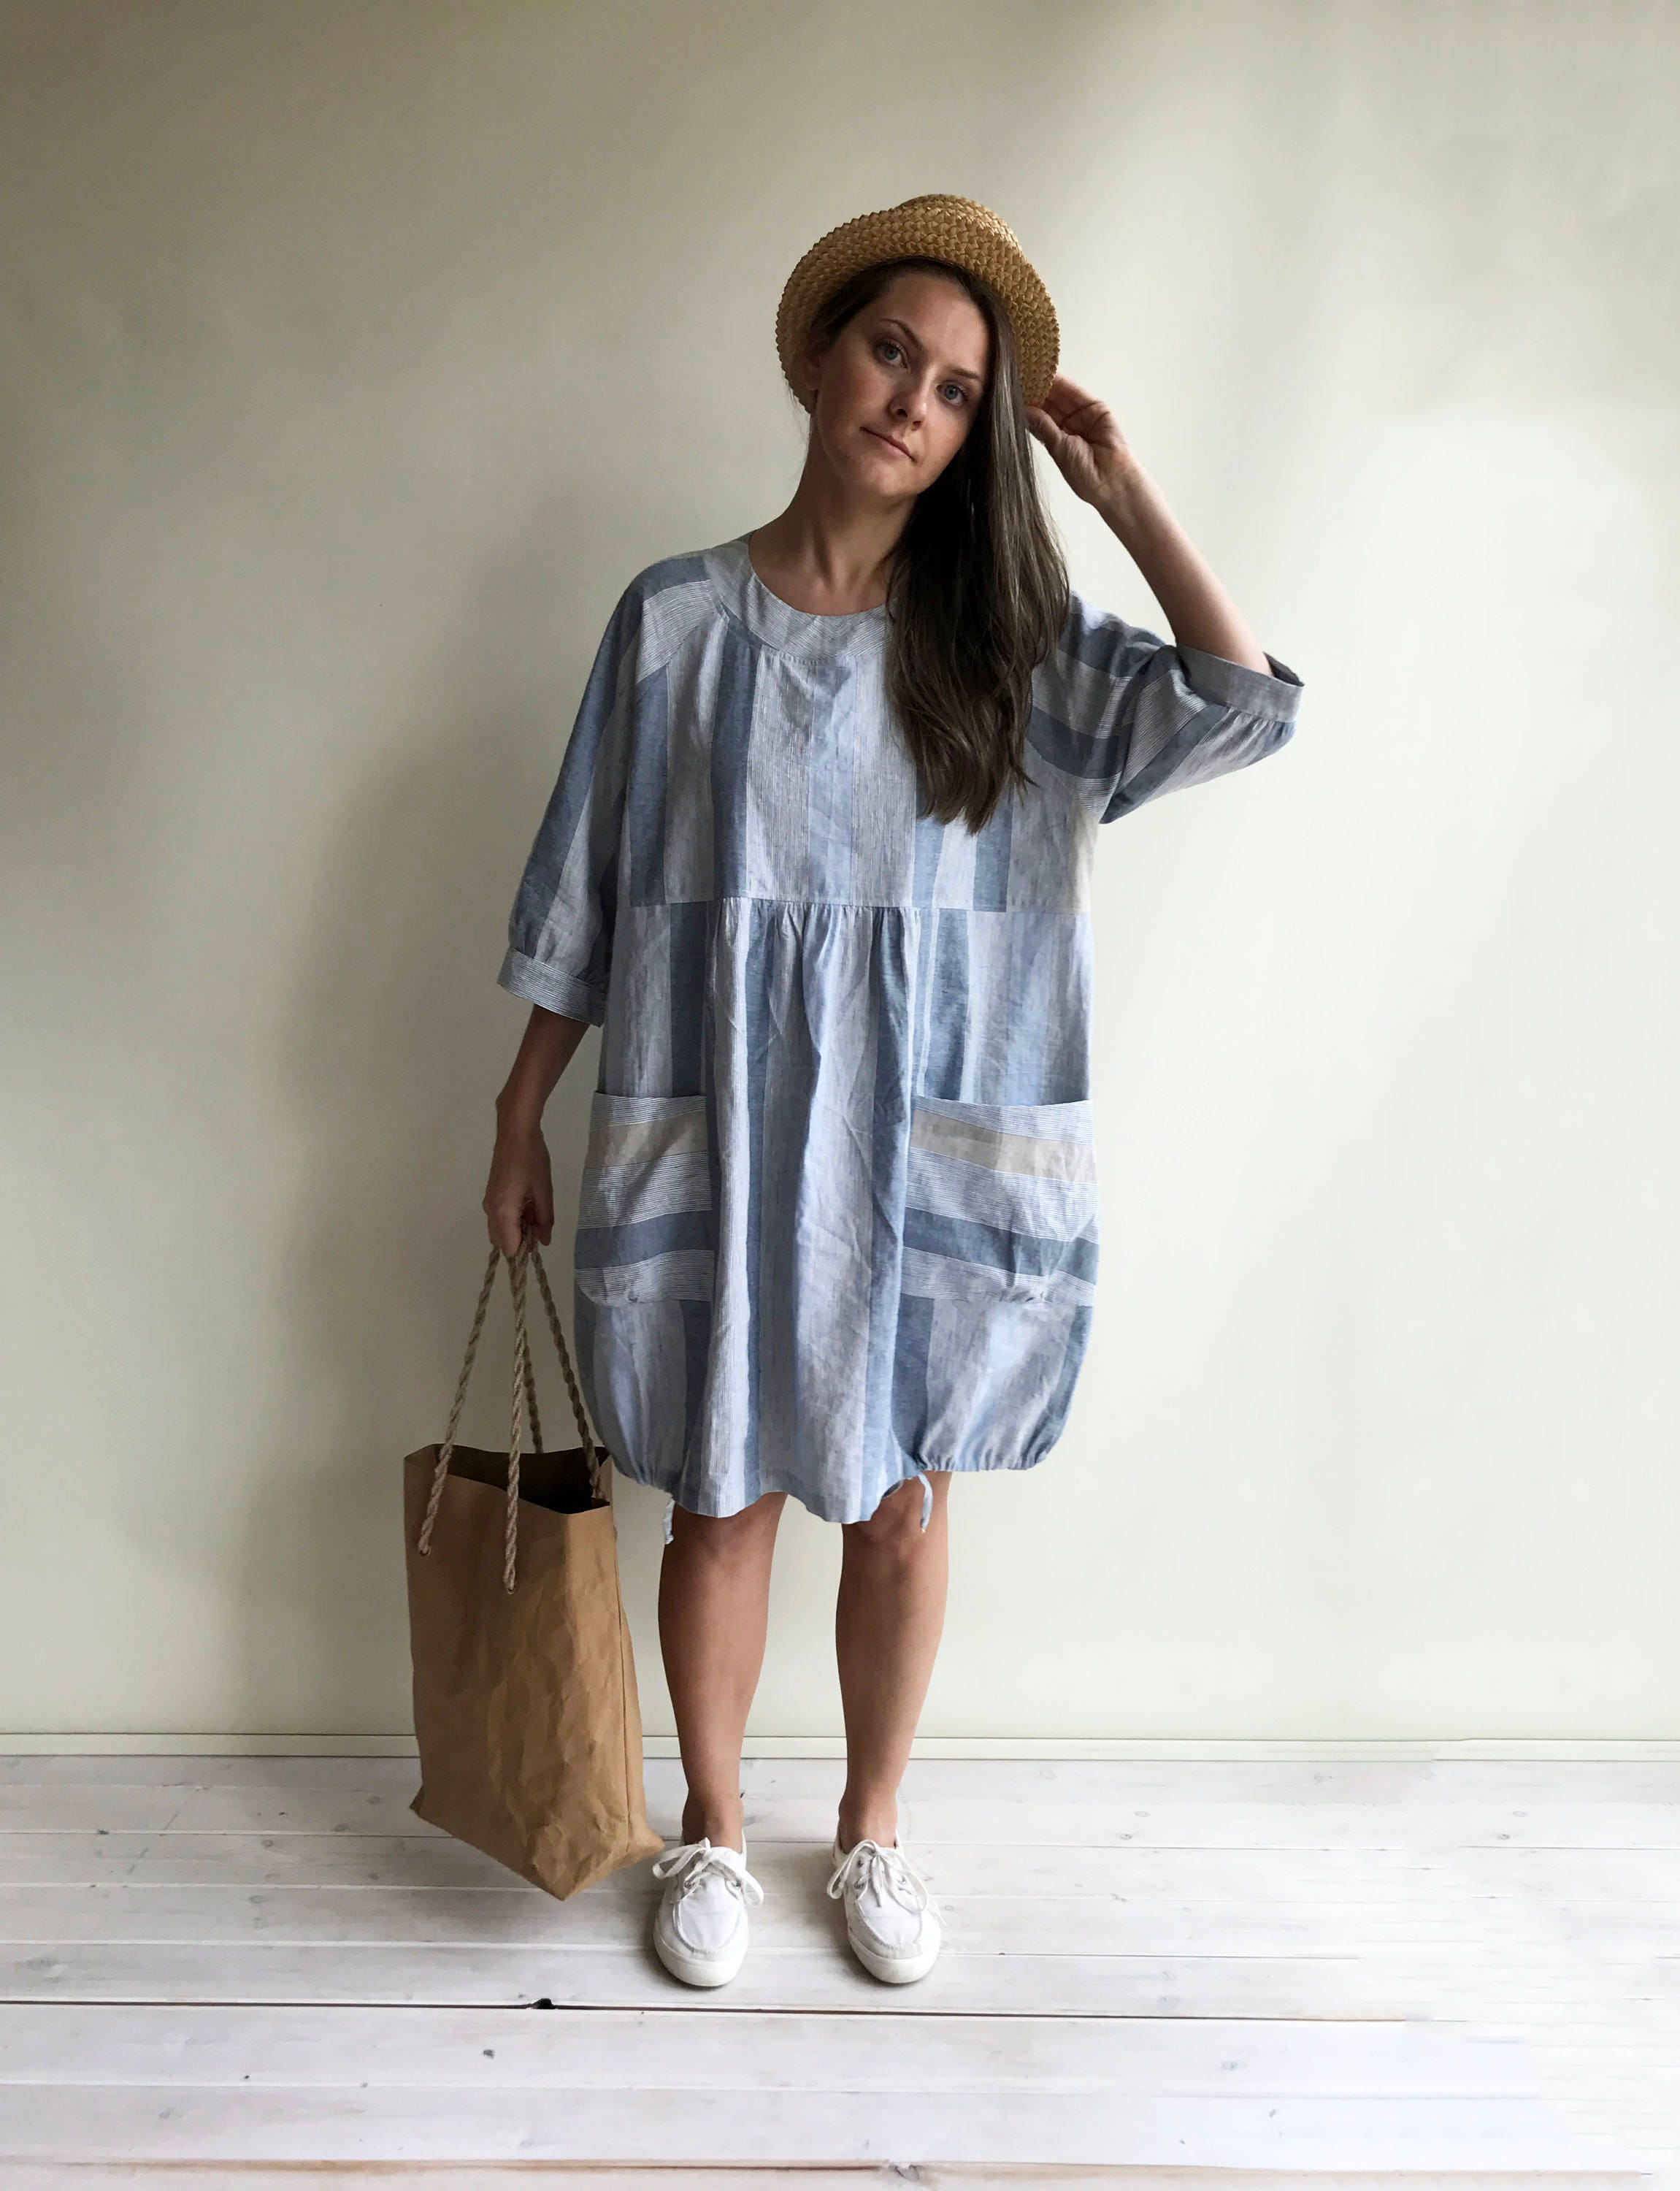 Dress Tunic for women pictures forecasting to wear for autumn in 2019